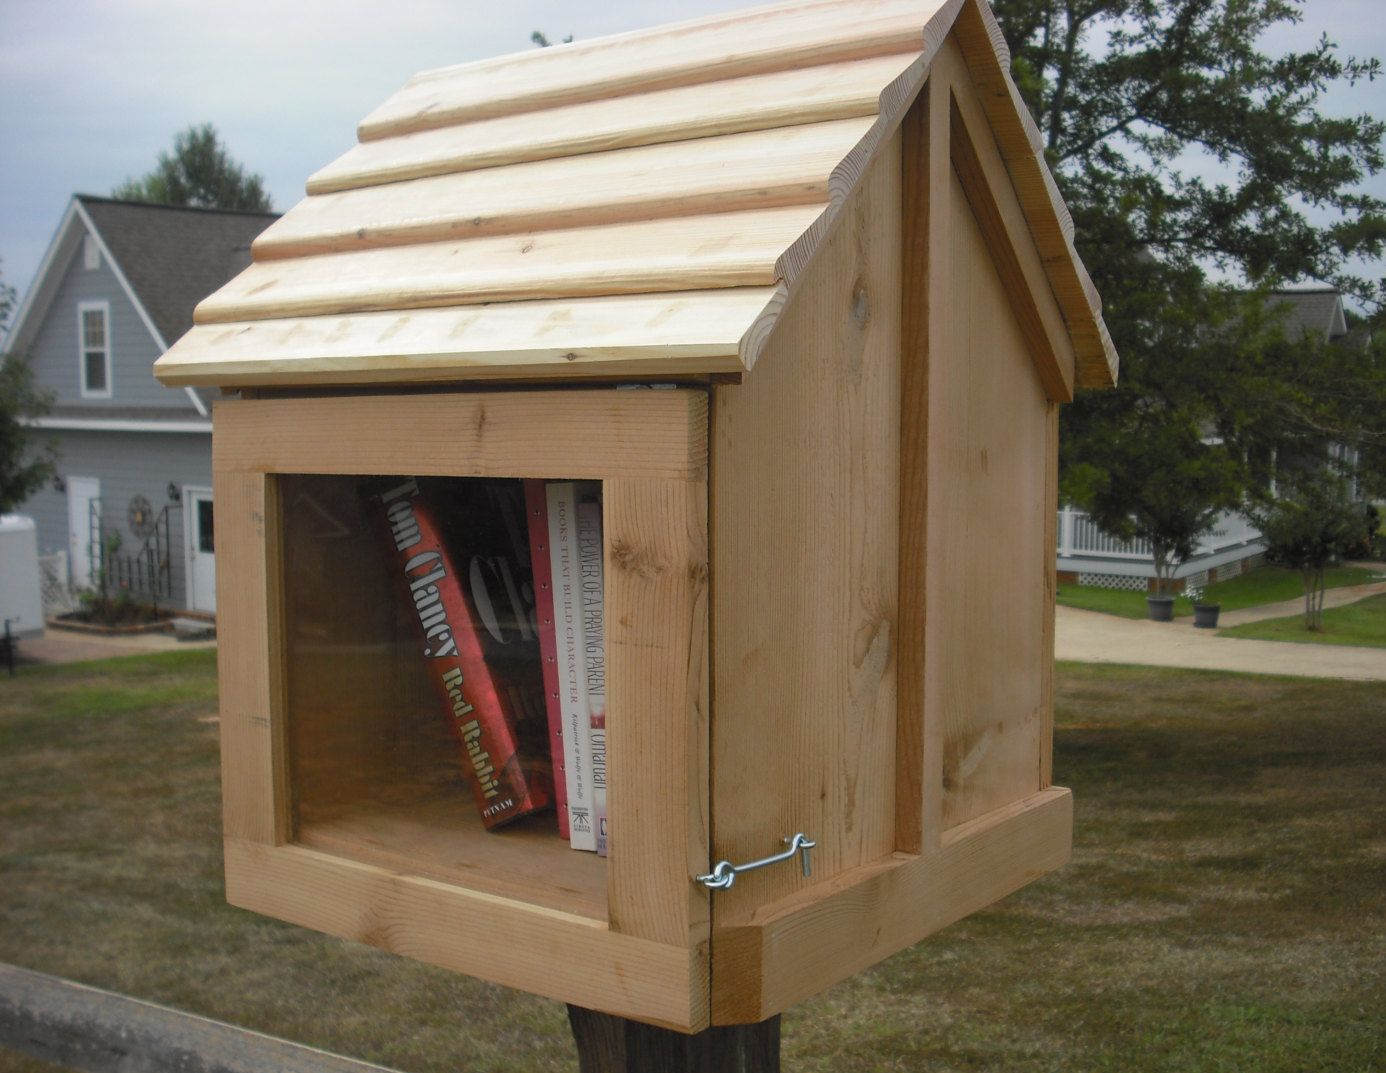 House On A Stick Cedar Pine Neighbor Book Exchange Unfinished With Post Mount Fully Assembled Must Be Painted Or Little Free Libraries Post Mount Cedar